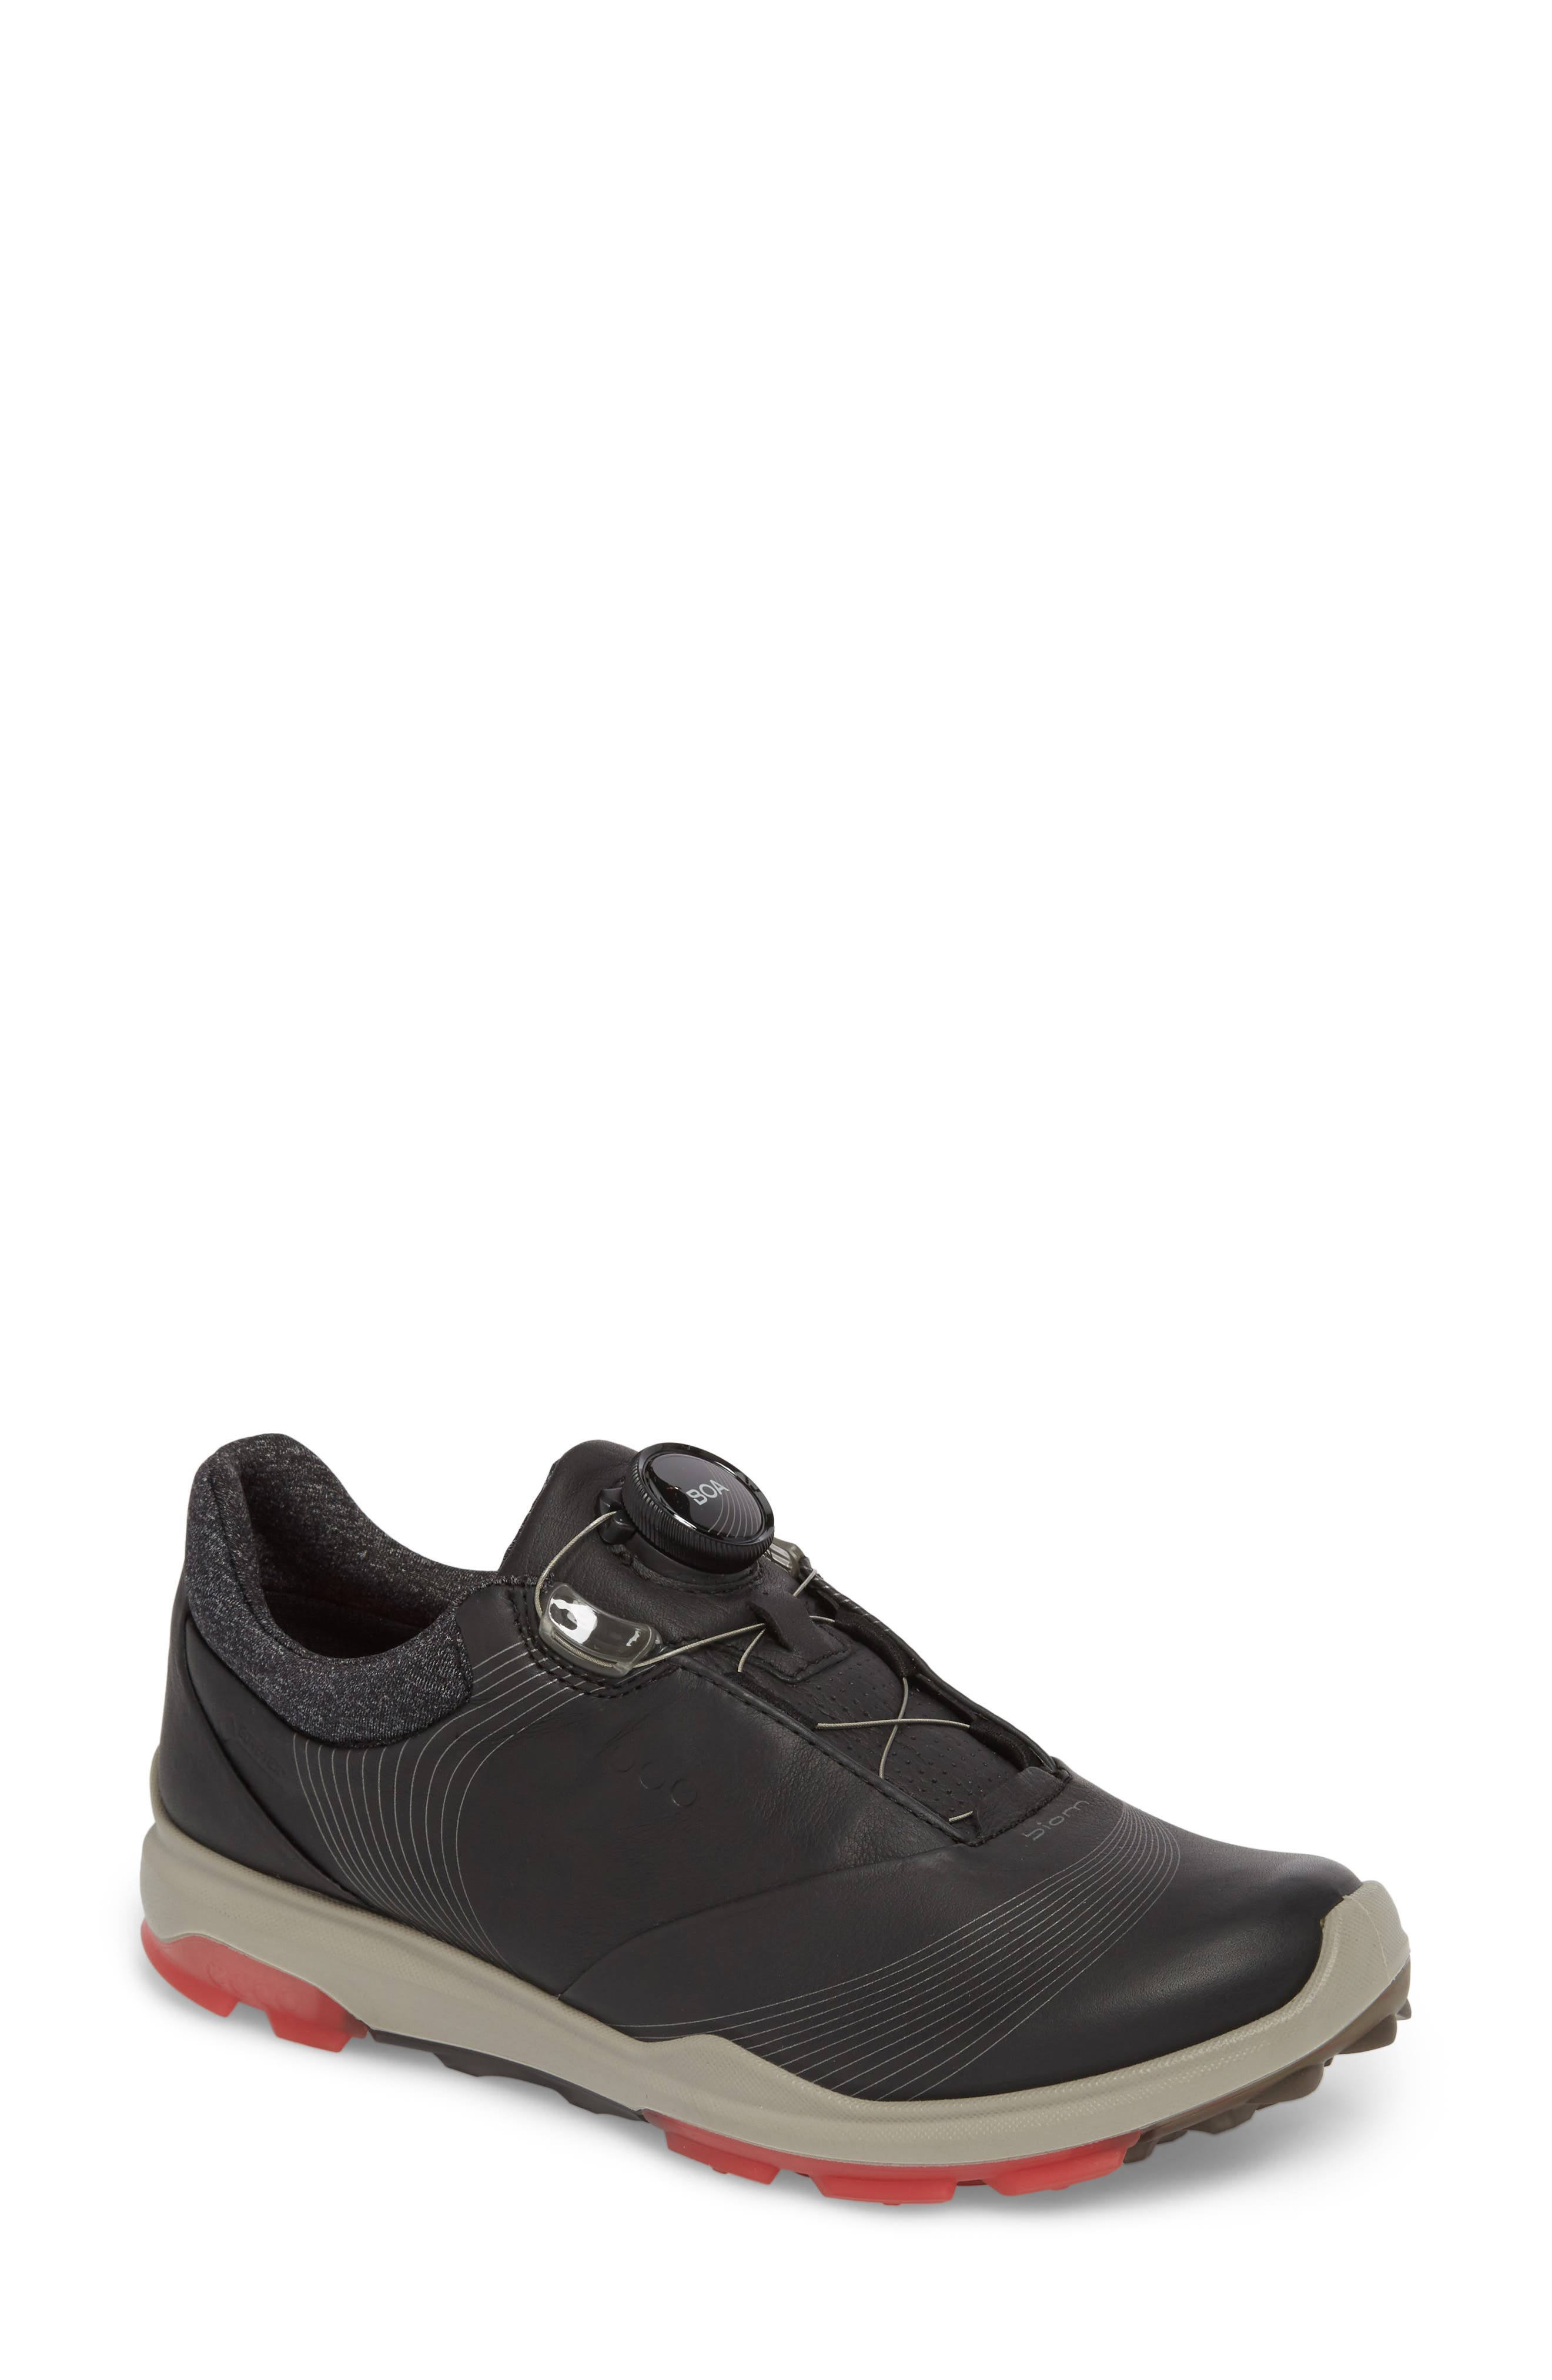 BIOM 2 Hybrid Gore-Tex<sup>®</sup> Golf Shoe,                             Main thumbnail 1, color,                             BLACK LEATHER